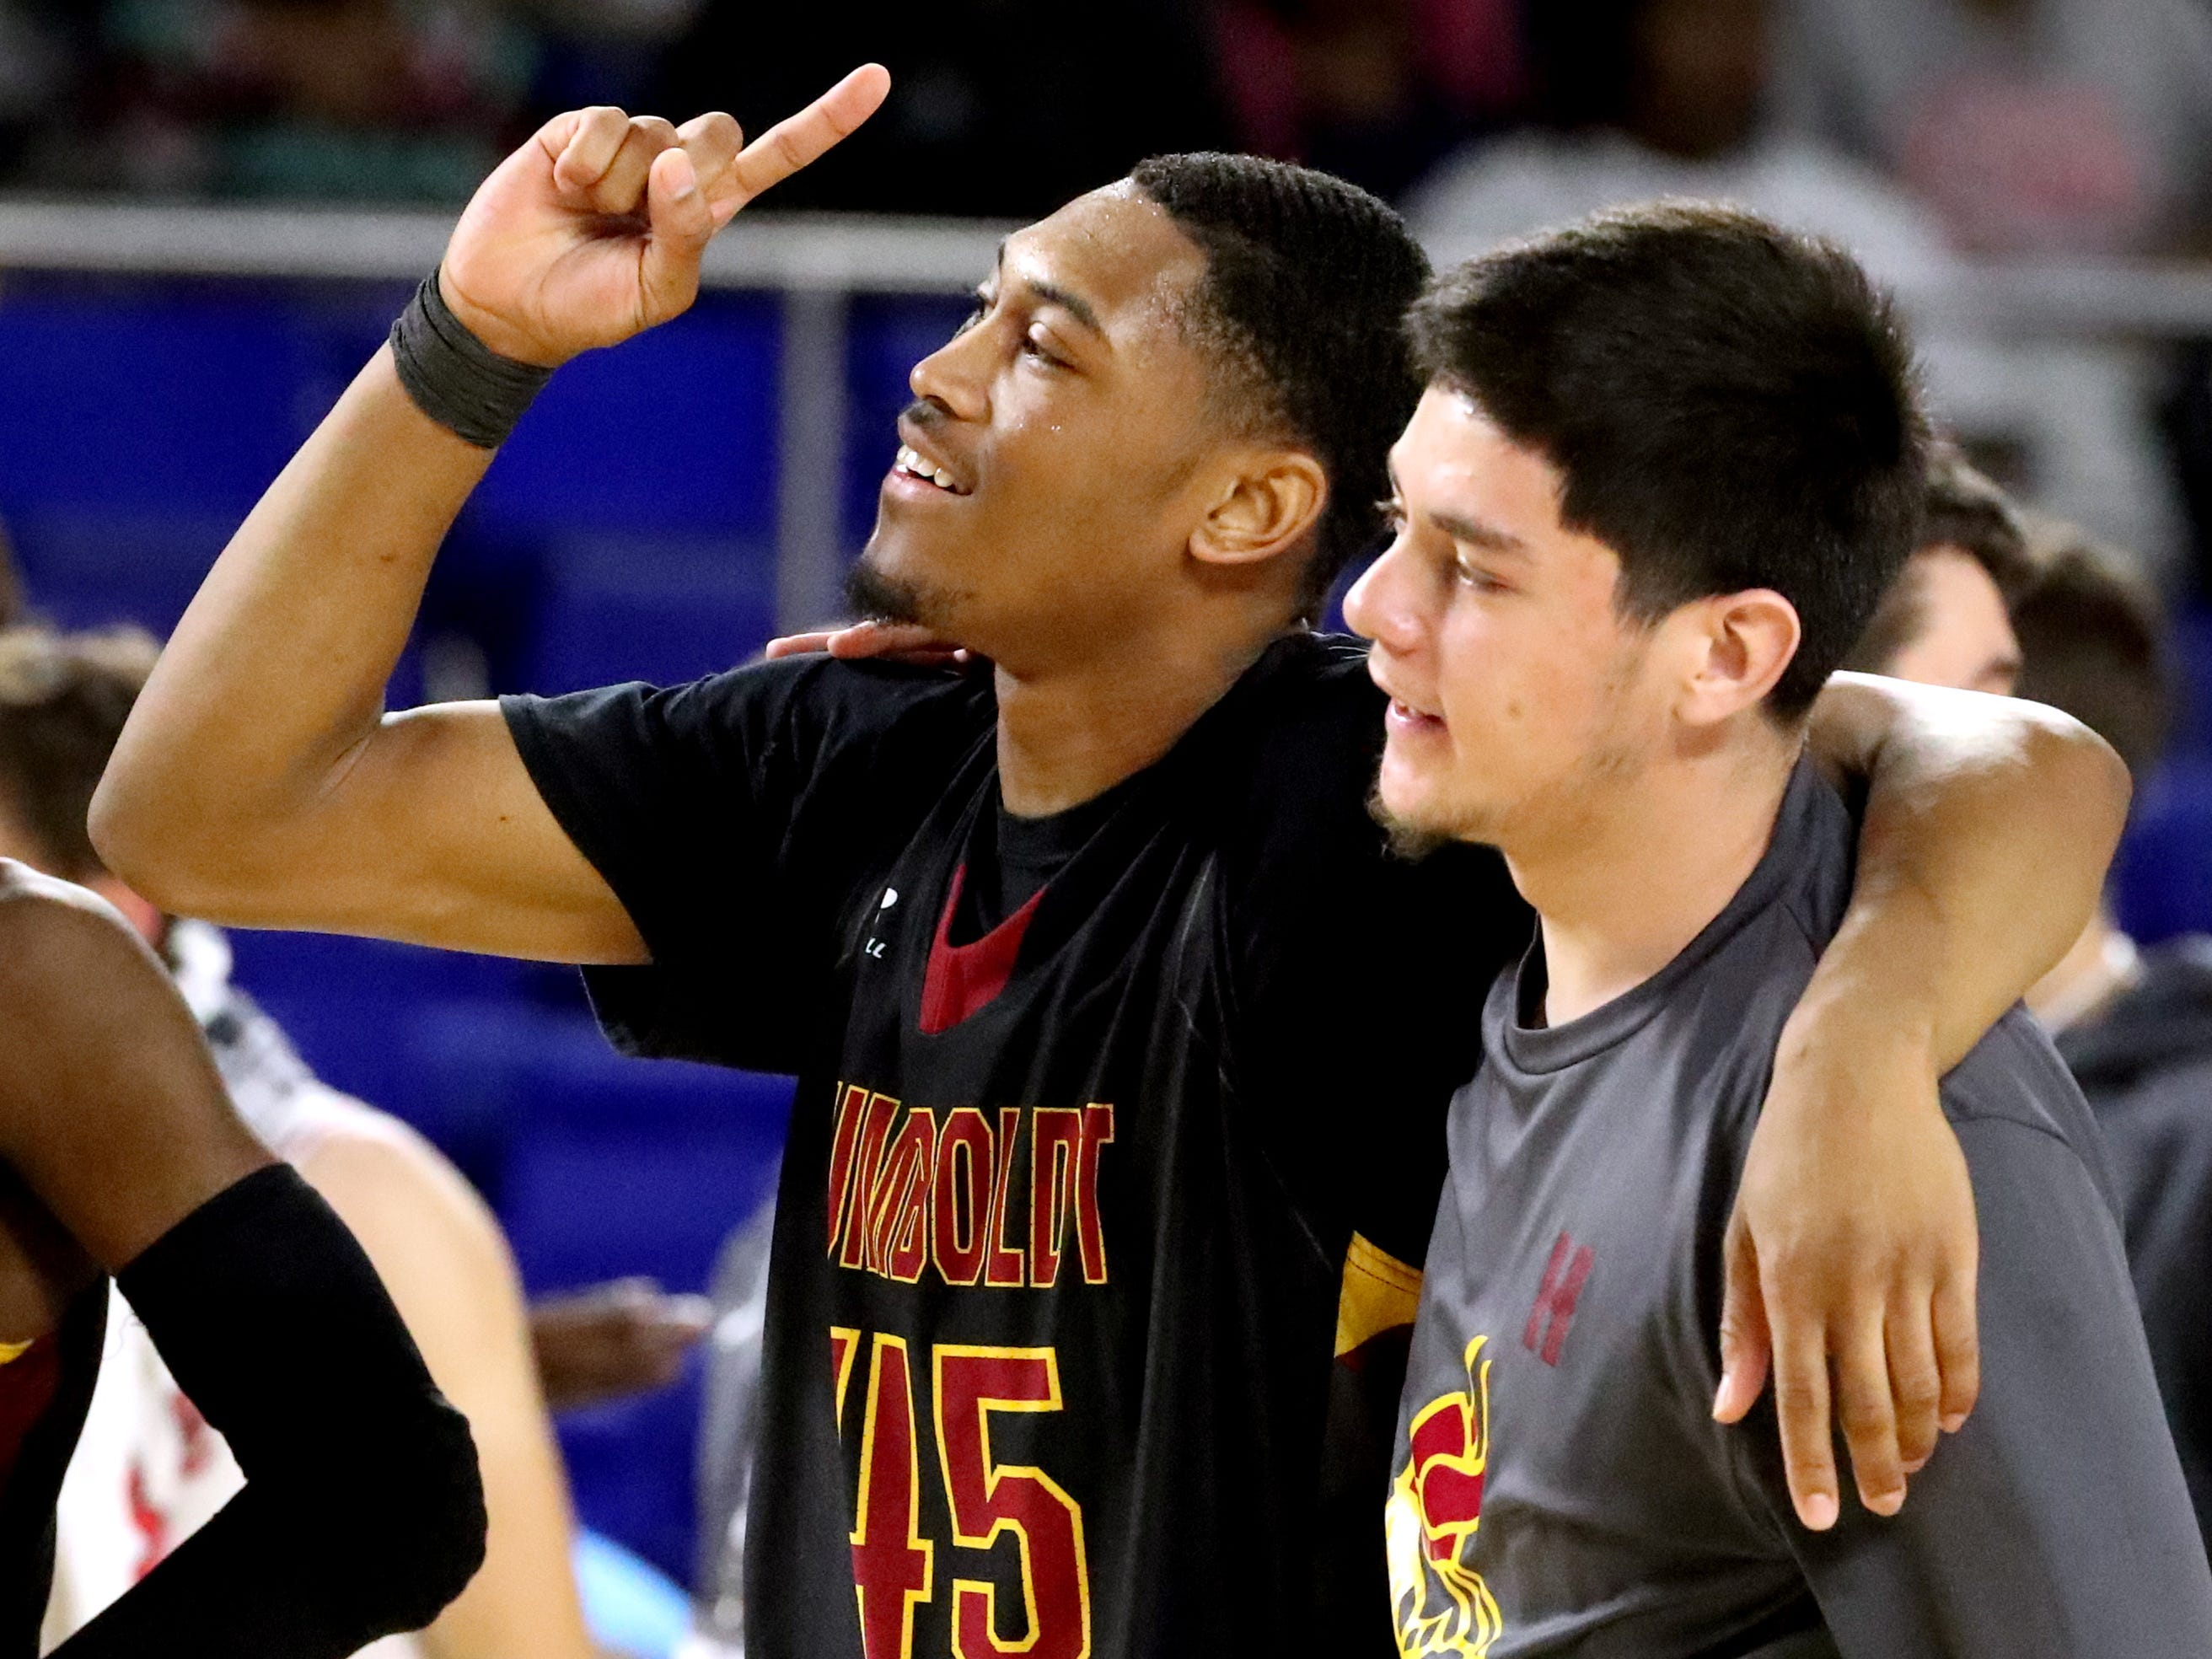 Humboldt's Anthony Jones (45) and Humboldt's Gabriel Bracamonte (1) celebrate beating McKenzie 66-55 in the semifinal round of the TSSAA Class A Boys State Tournament, on Thursday, March 15, 2019, at Murphy Center in Murfreesboro, Tenn.